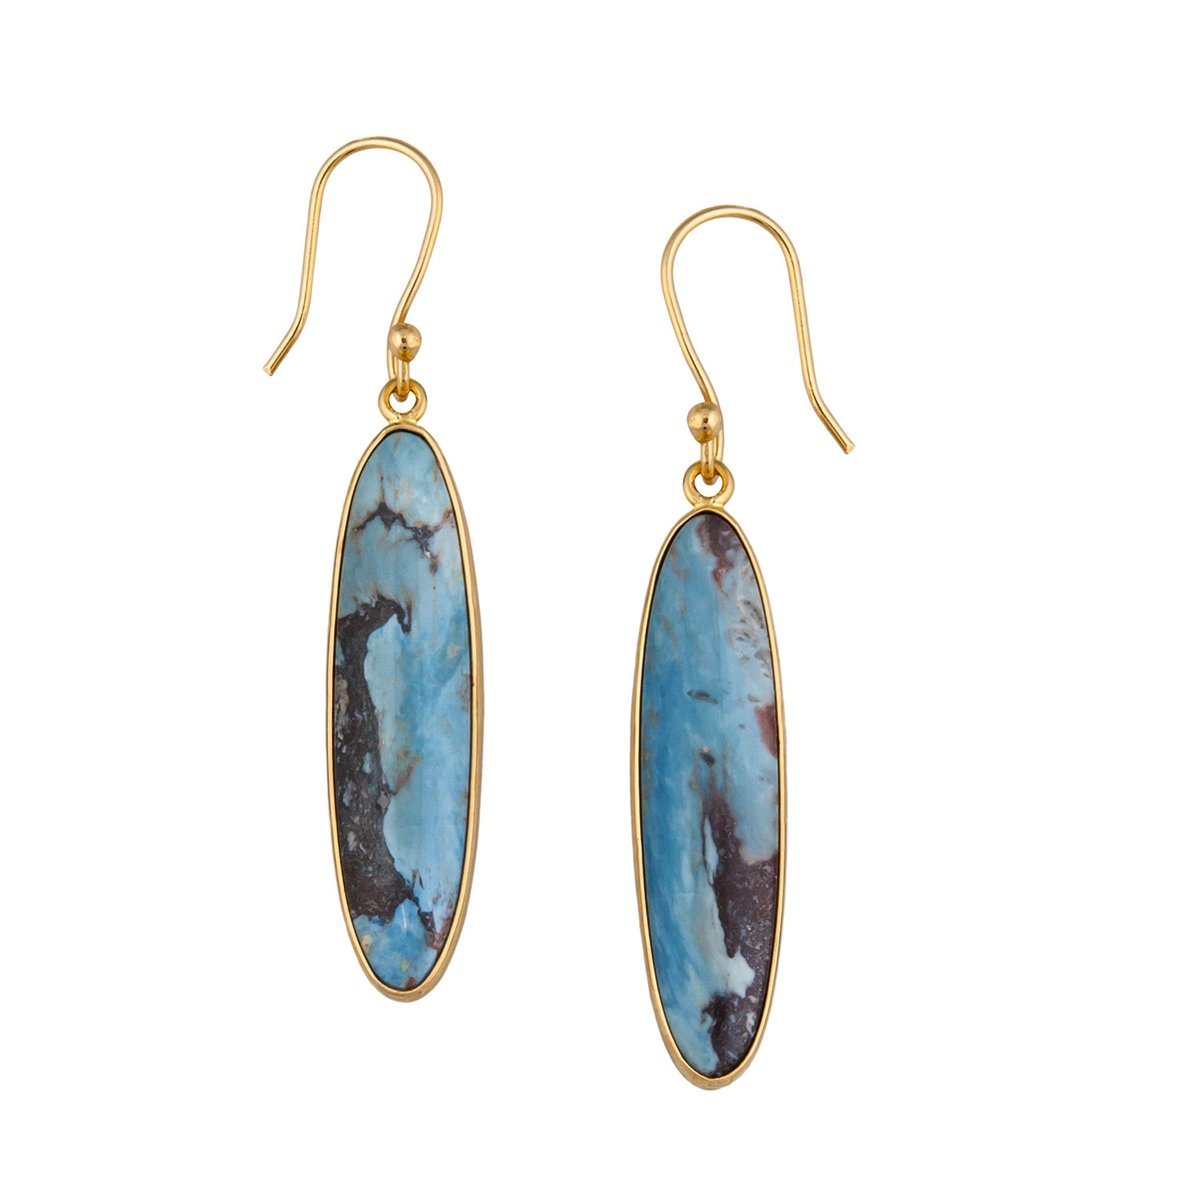 alchemia-aztec-lapis-earrings - 1 - Charles Albert Inc